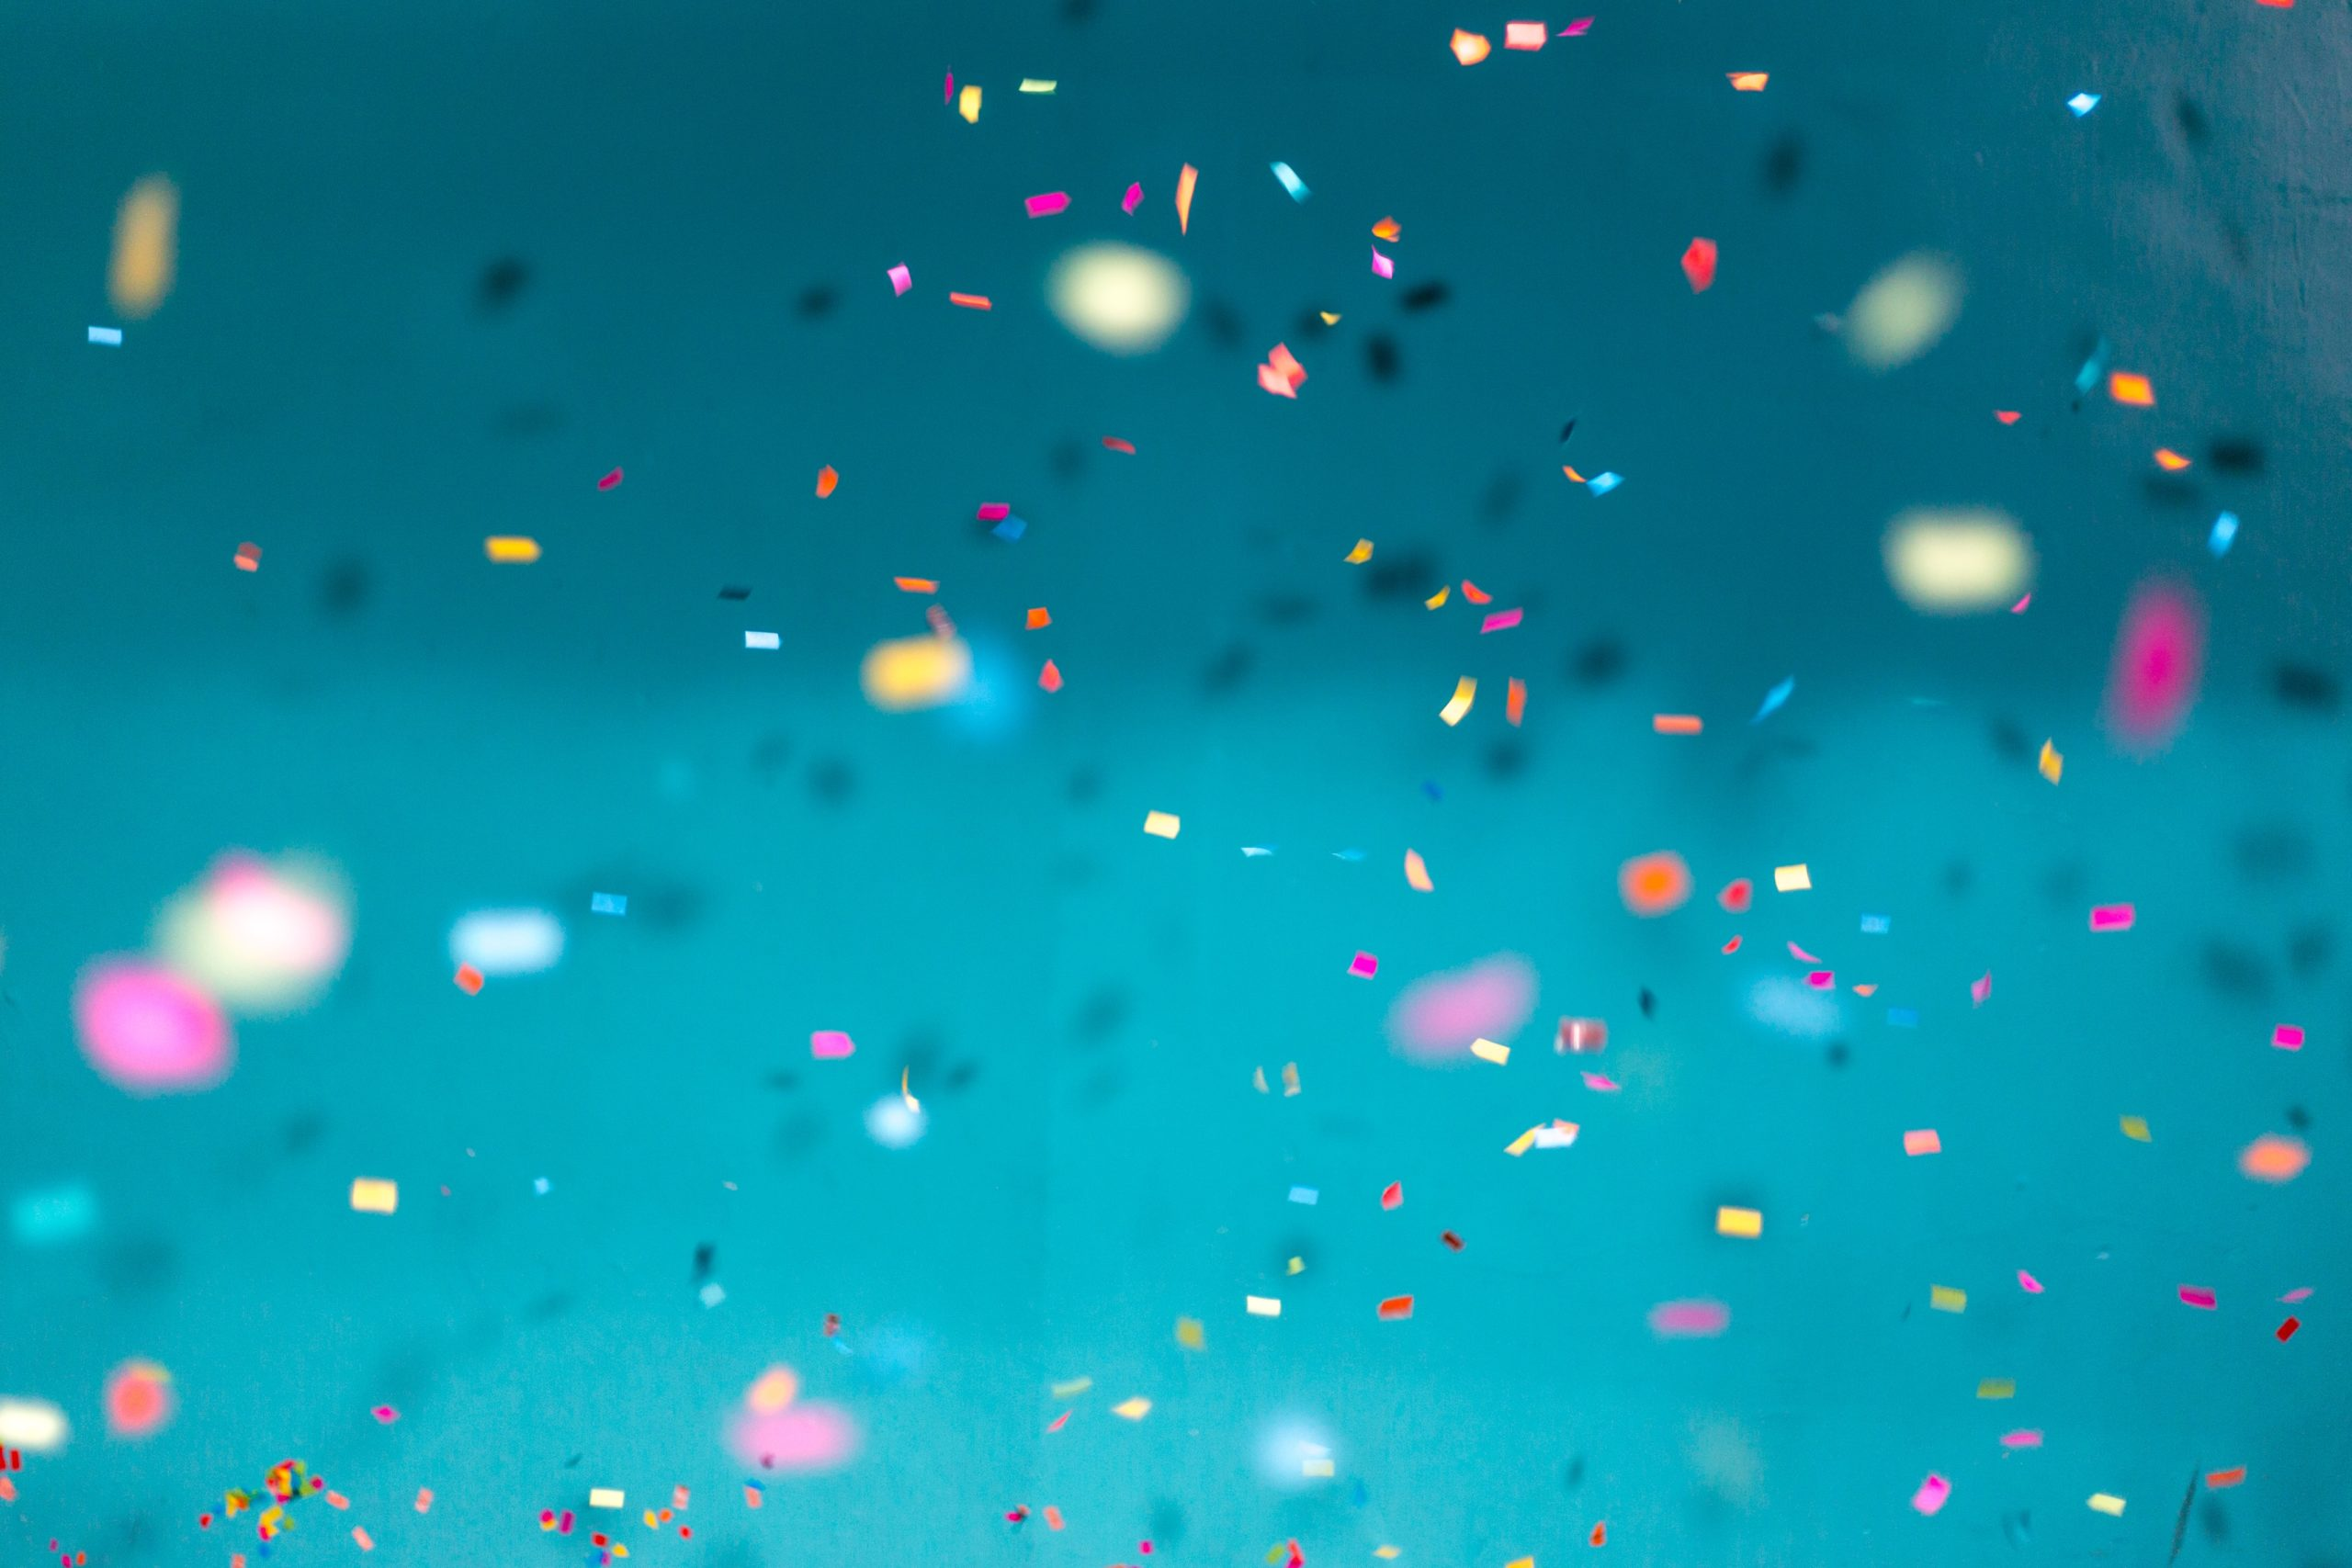 Colorful confetti falling down with a teal background